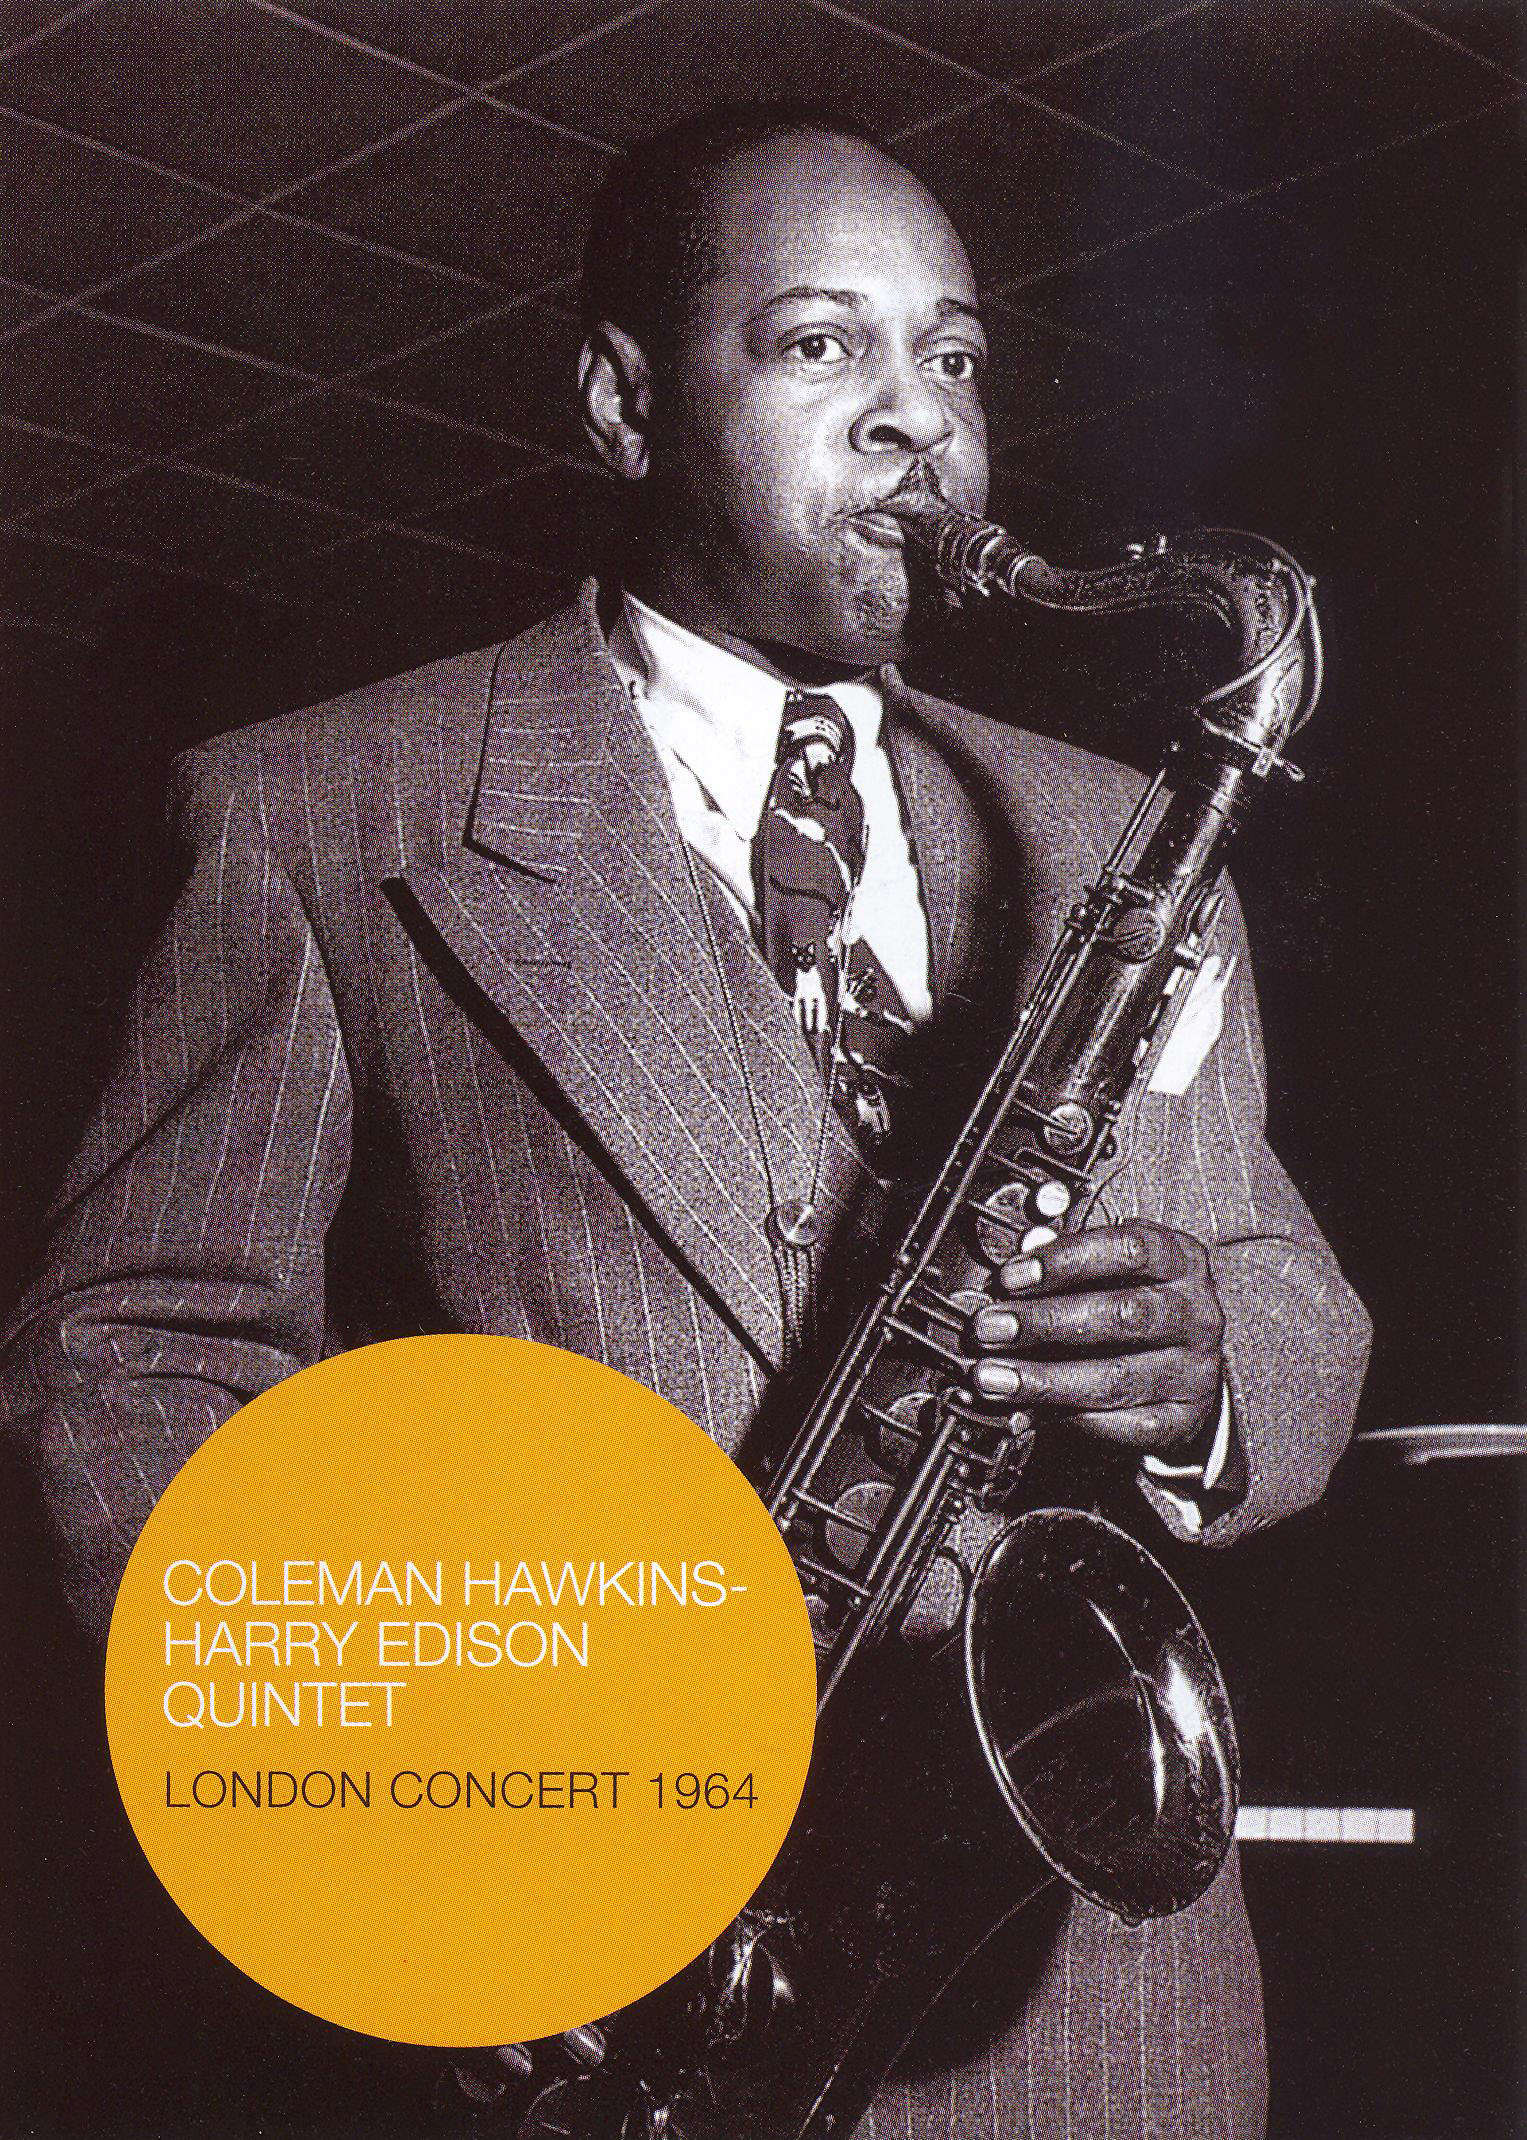 Coleman Hawkins and Harry